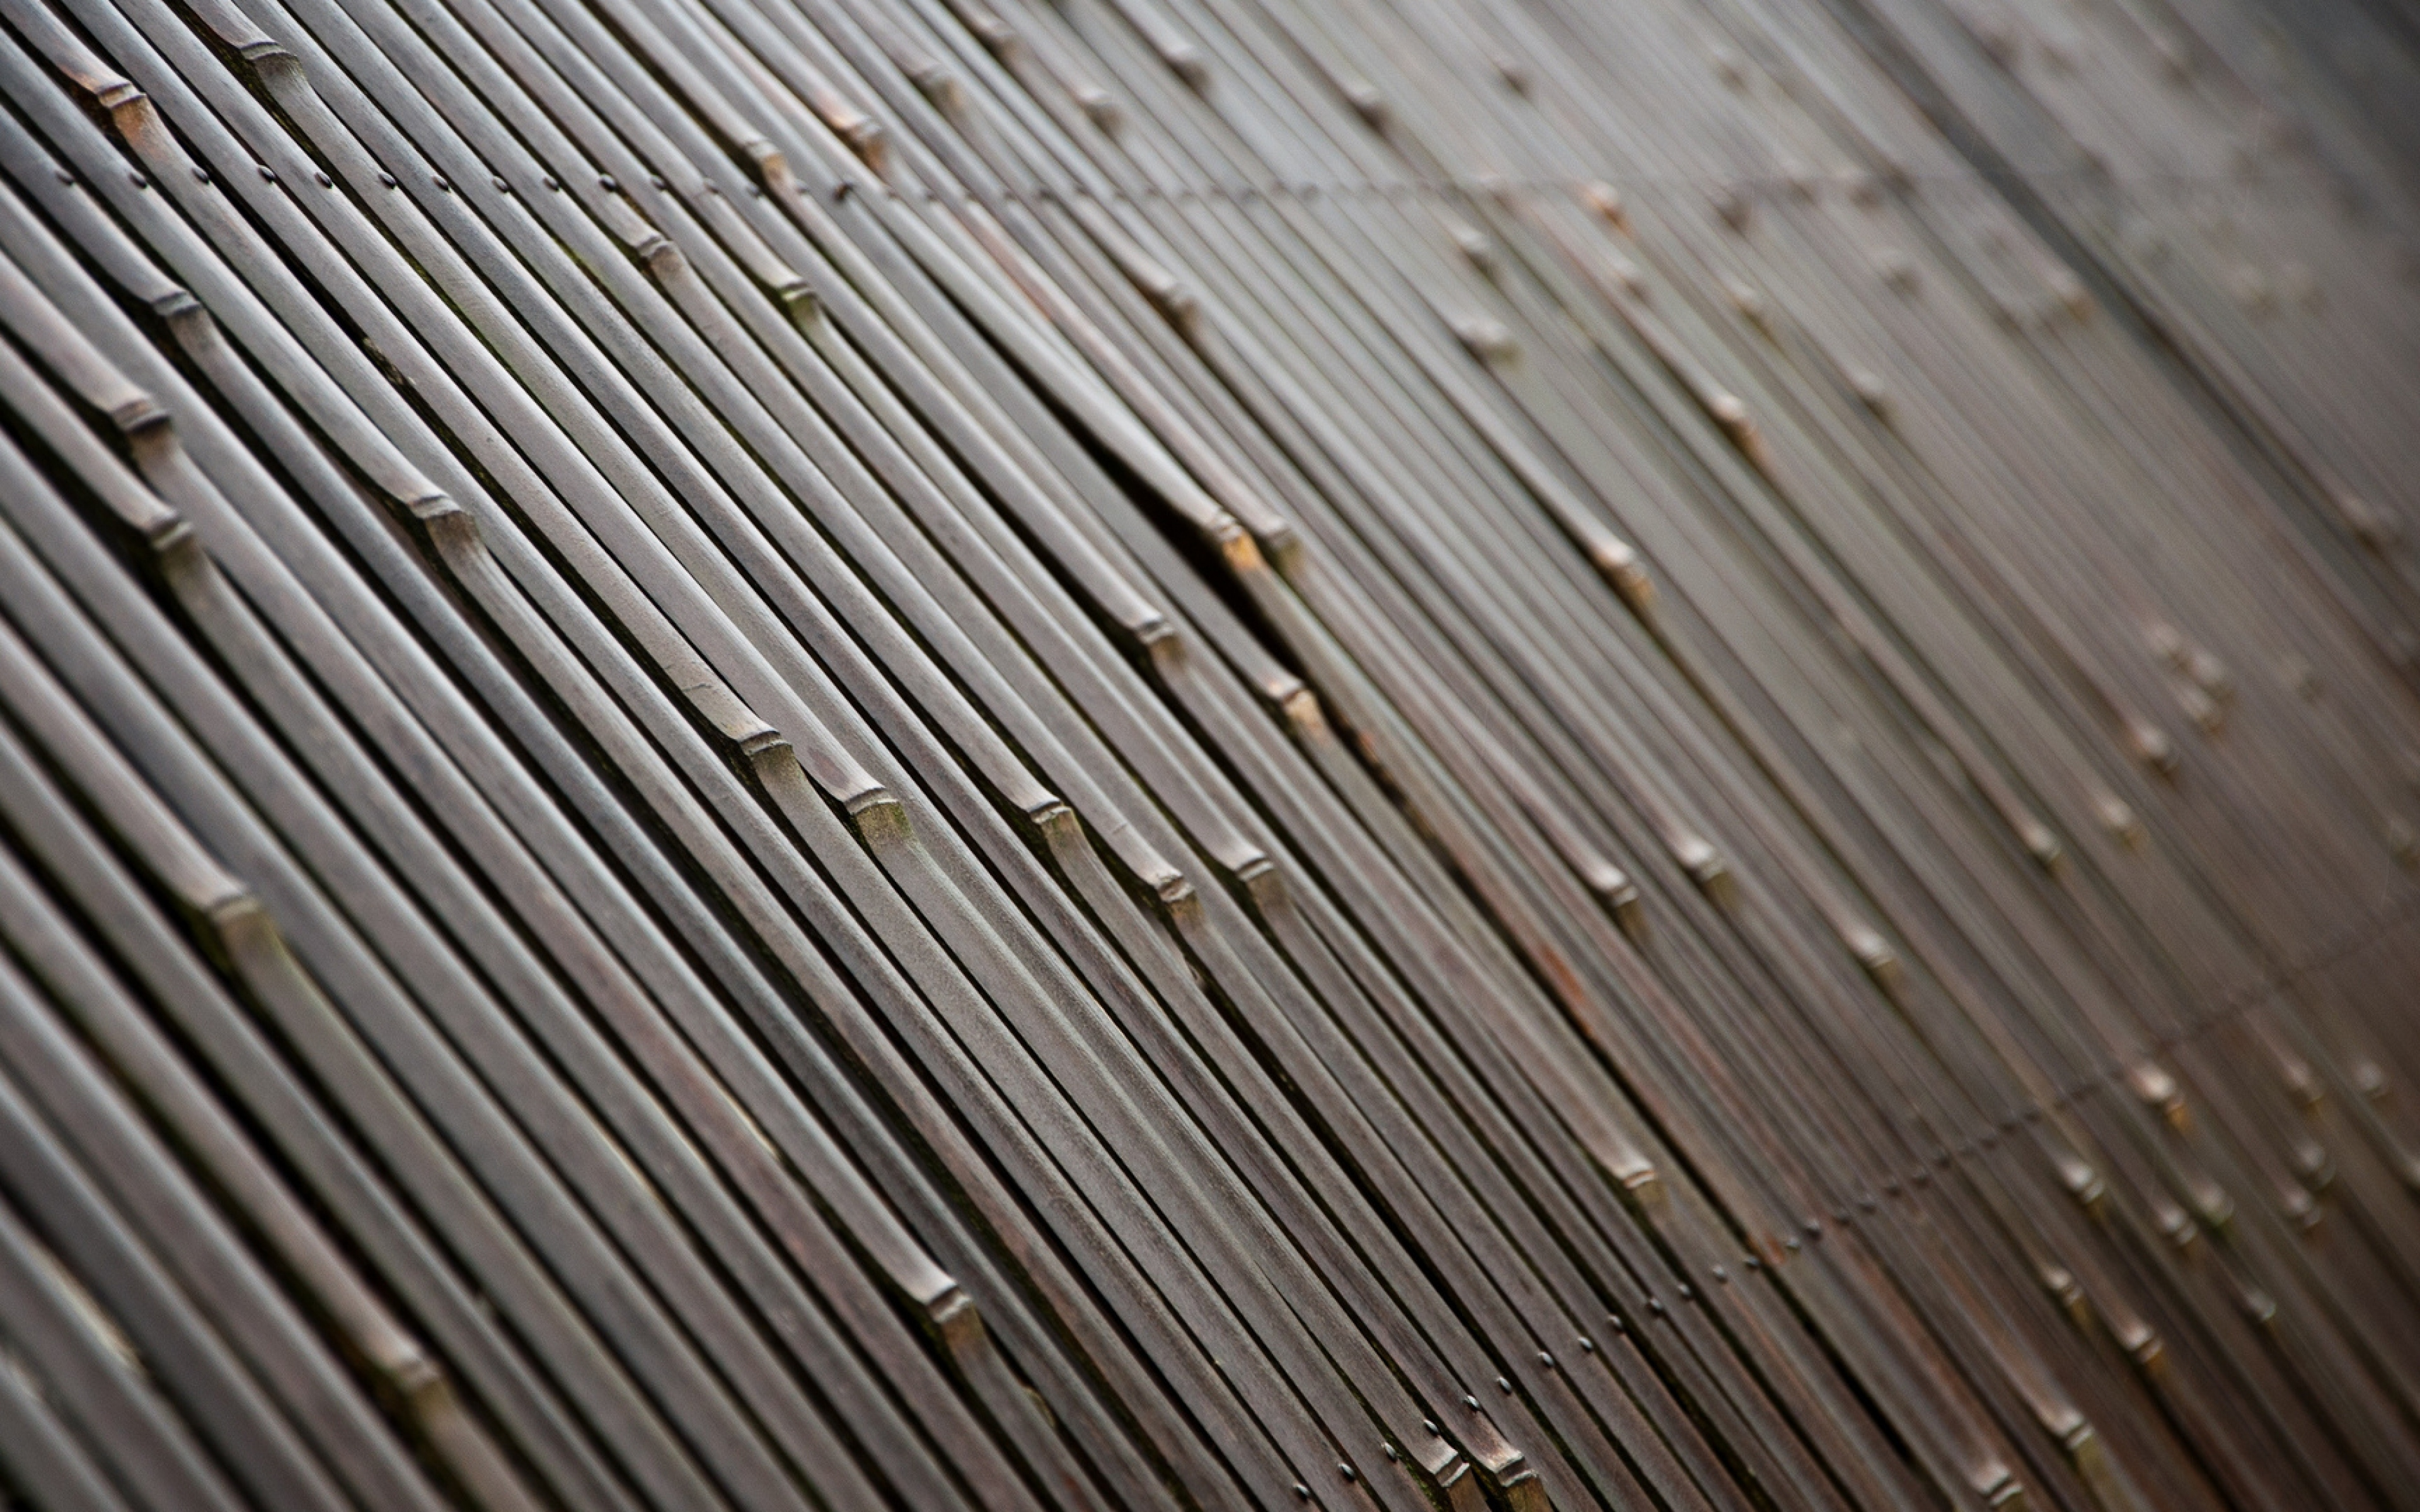 Wallpaper 3840x2400 texture bamboo fence Ultra HD 4K HD Background 3840x2400